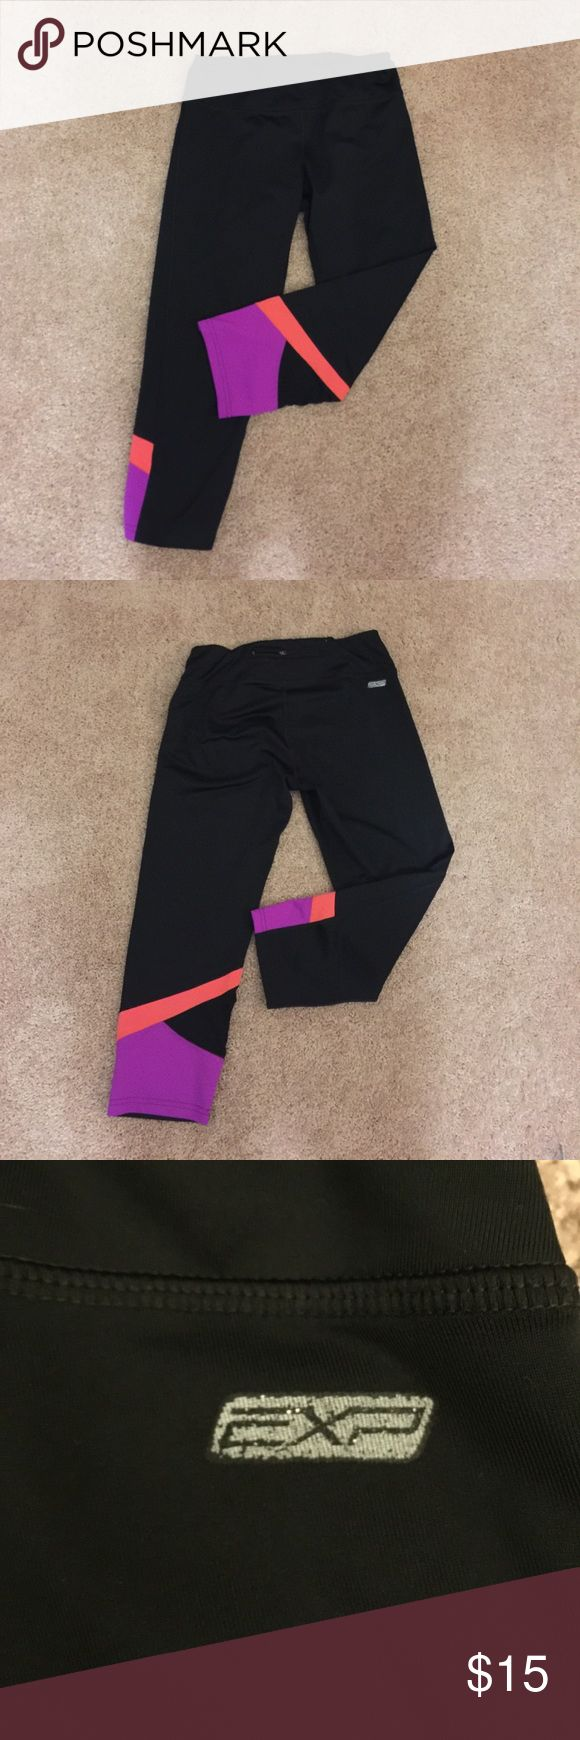 """Express Experience Core Athletic Capris Black gym capris with bright colorblocking at calf area. Small back zippered pocket . 20.5"""" inseam. Express Pants Capris"""